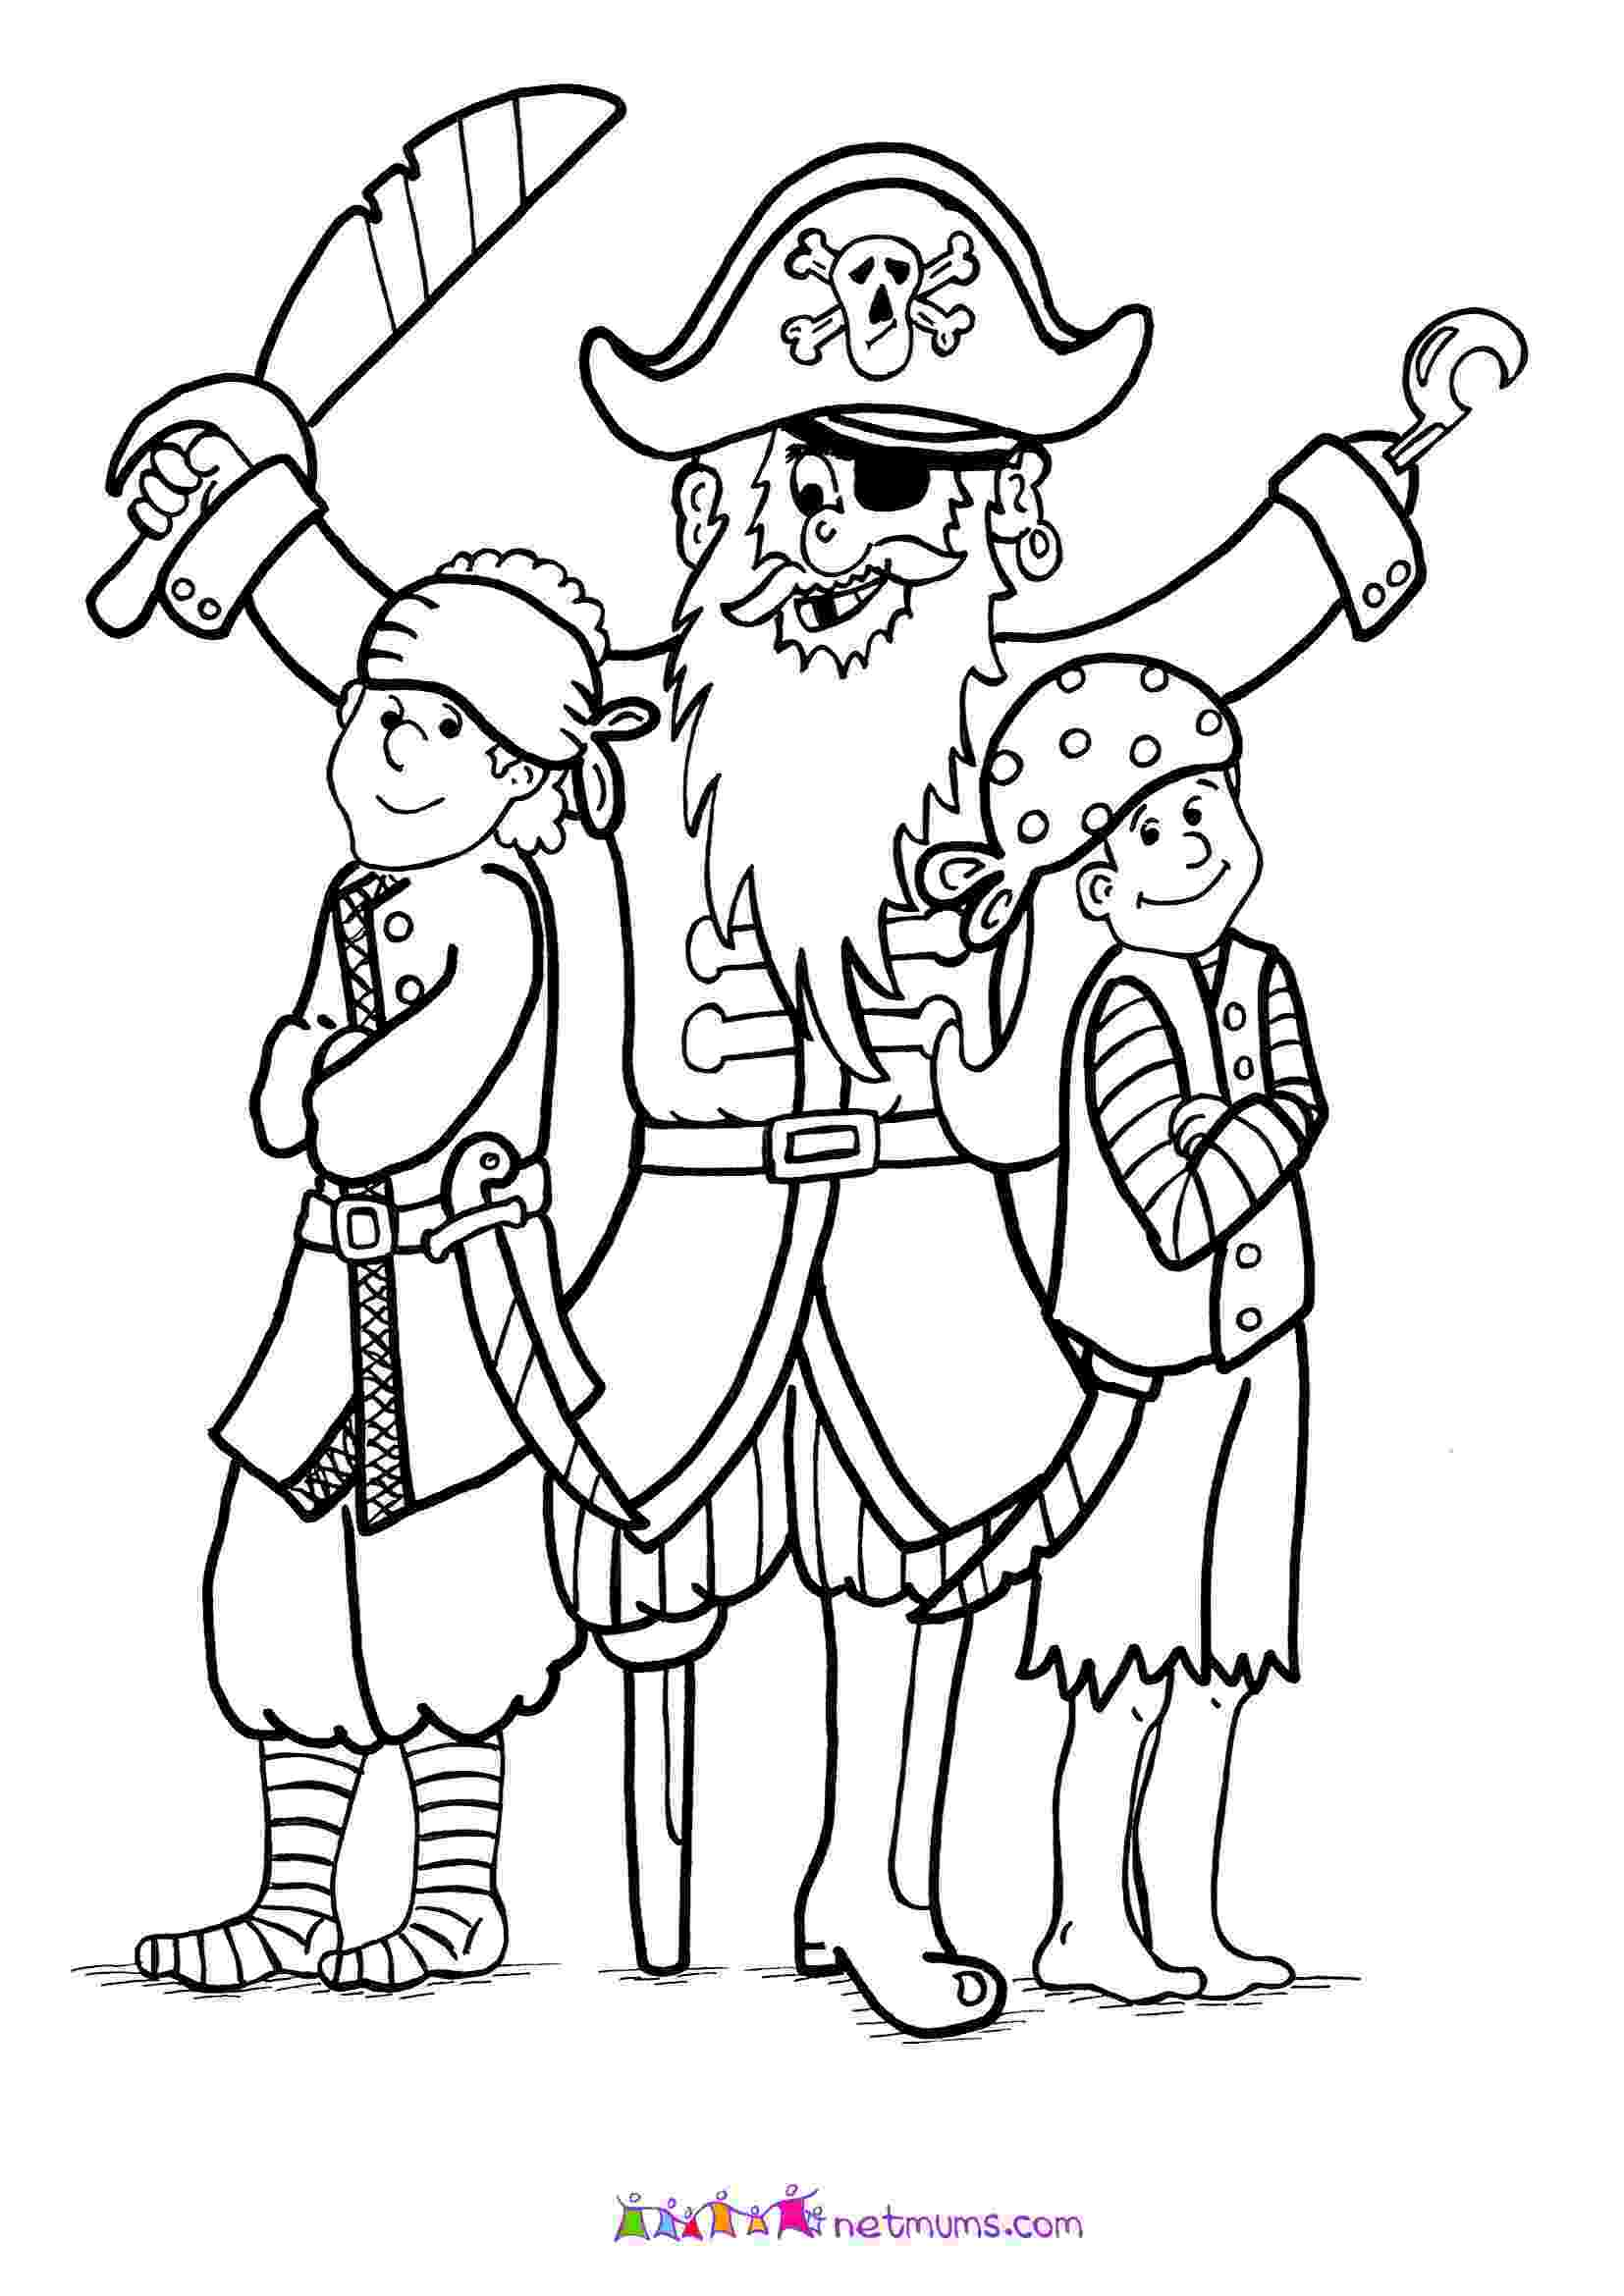 coloring book themes spring theme coloring pages for kids printable preschool book themes coloring